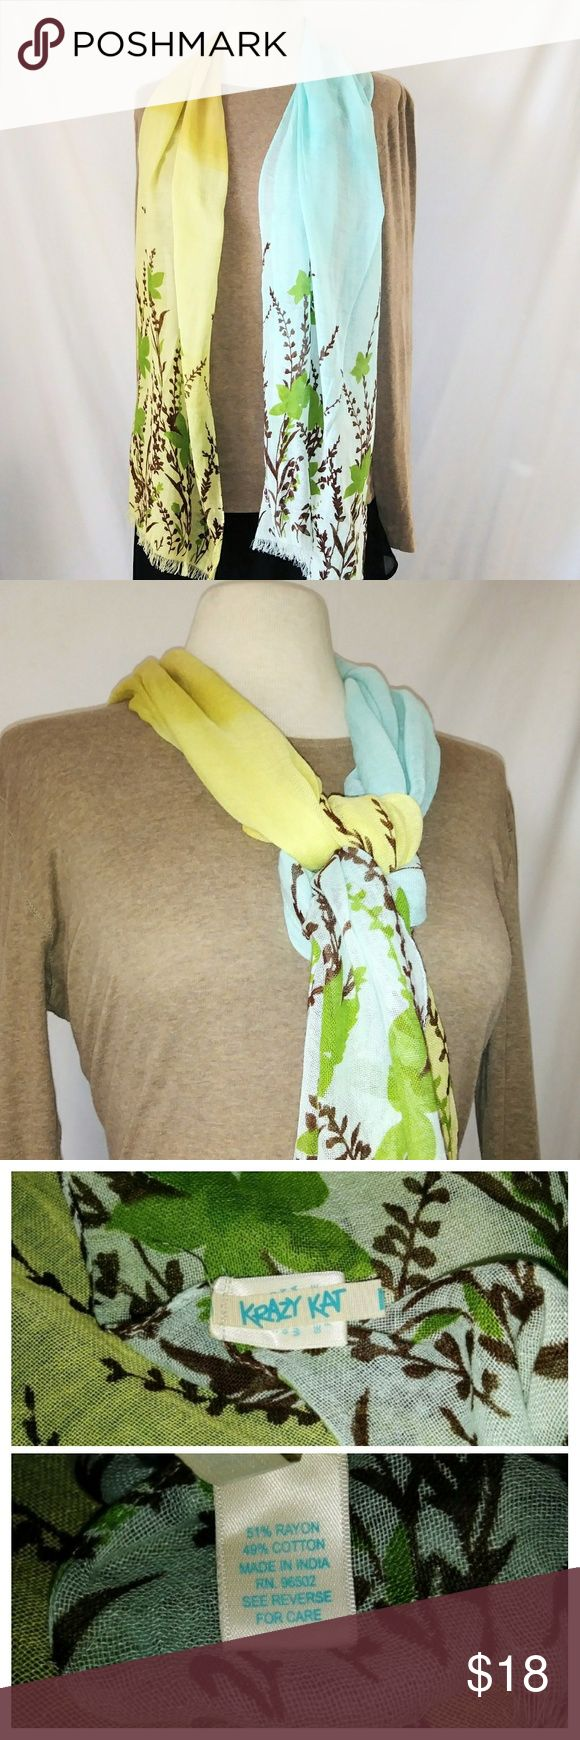 #hundredsofscarves: KRAZY Kat 2-Tone Cotton Scarf Sky Blue & Light Green Two-Tone Lightweight Cotton Blend Scarf by Krazy Kat. In excellent used condition. From a smoke free home. Make an offer! BUNDLE & Automatically Get 20% Off on 2+ Items. Bundle one or more items and I'll make you a private offer up to 40% off - the bigger the bundle the bigger the savings! *Hundreds of Scarves @gratefulbox = POSH AMBASSADOR at yr service!* Krazy Kat Accessories Scarves & Wraps